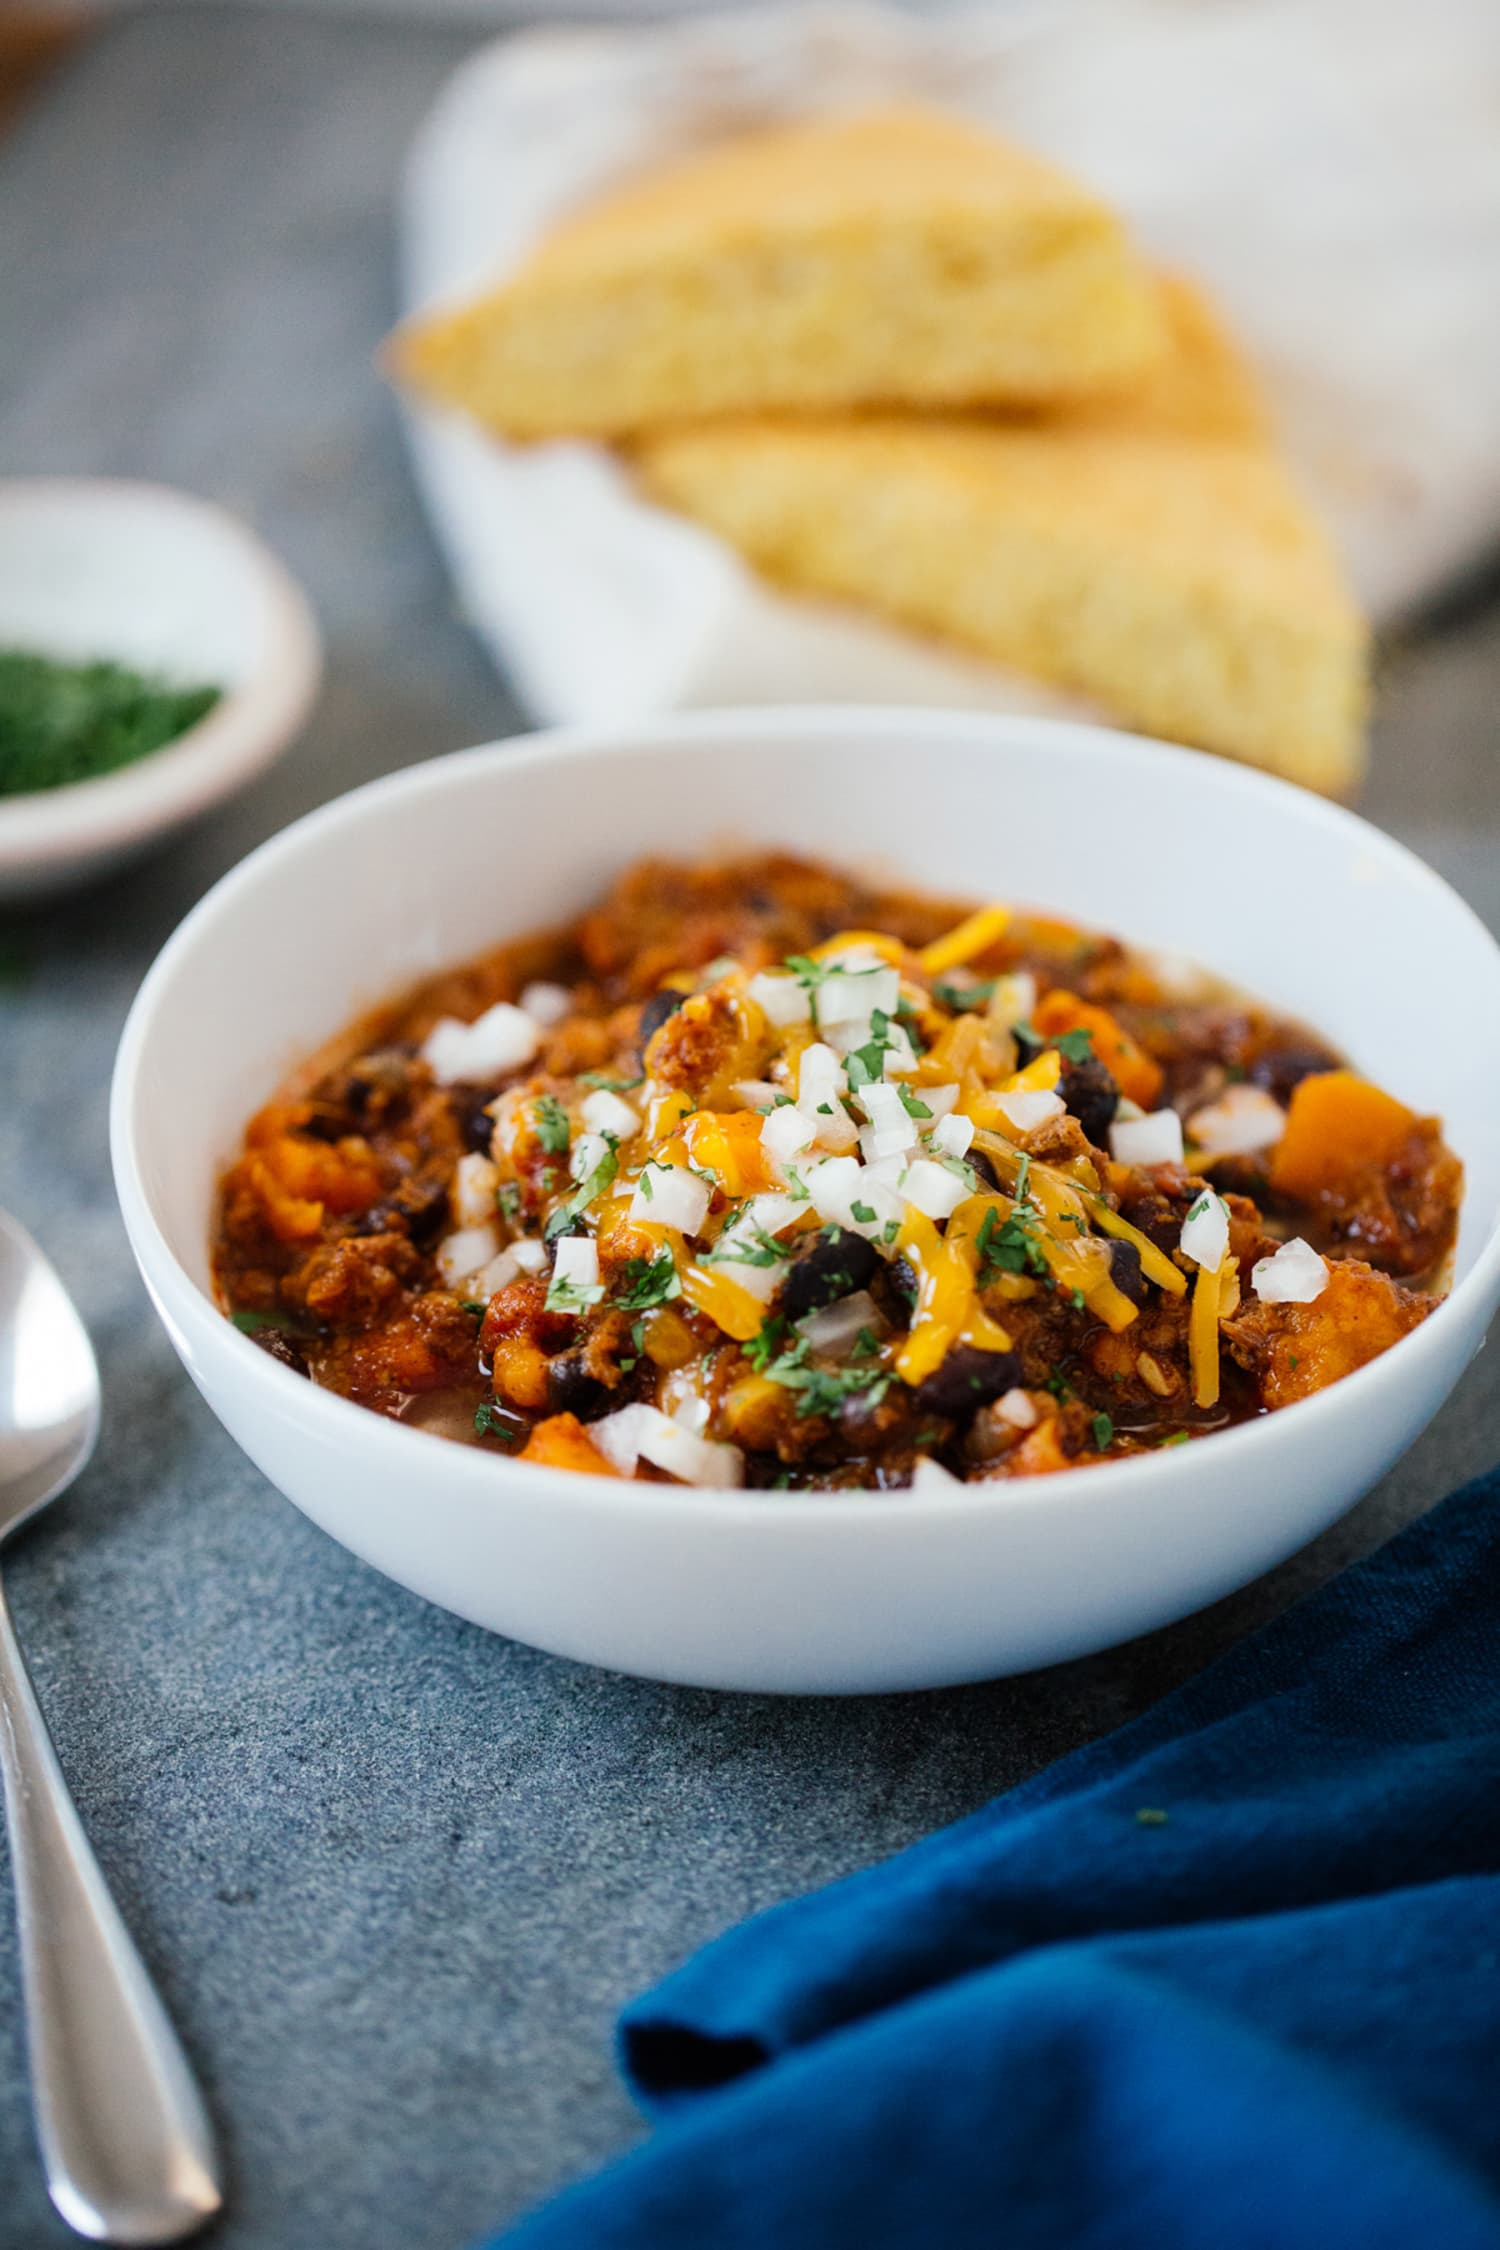 5 Easy-Peasy Sweet Potato Dishes to Make in a Slow Cooker